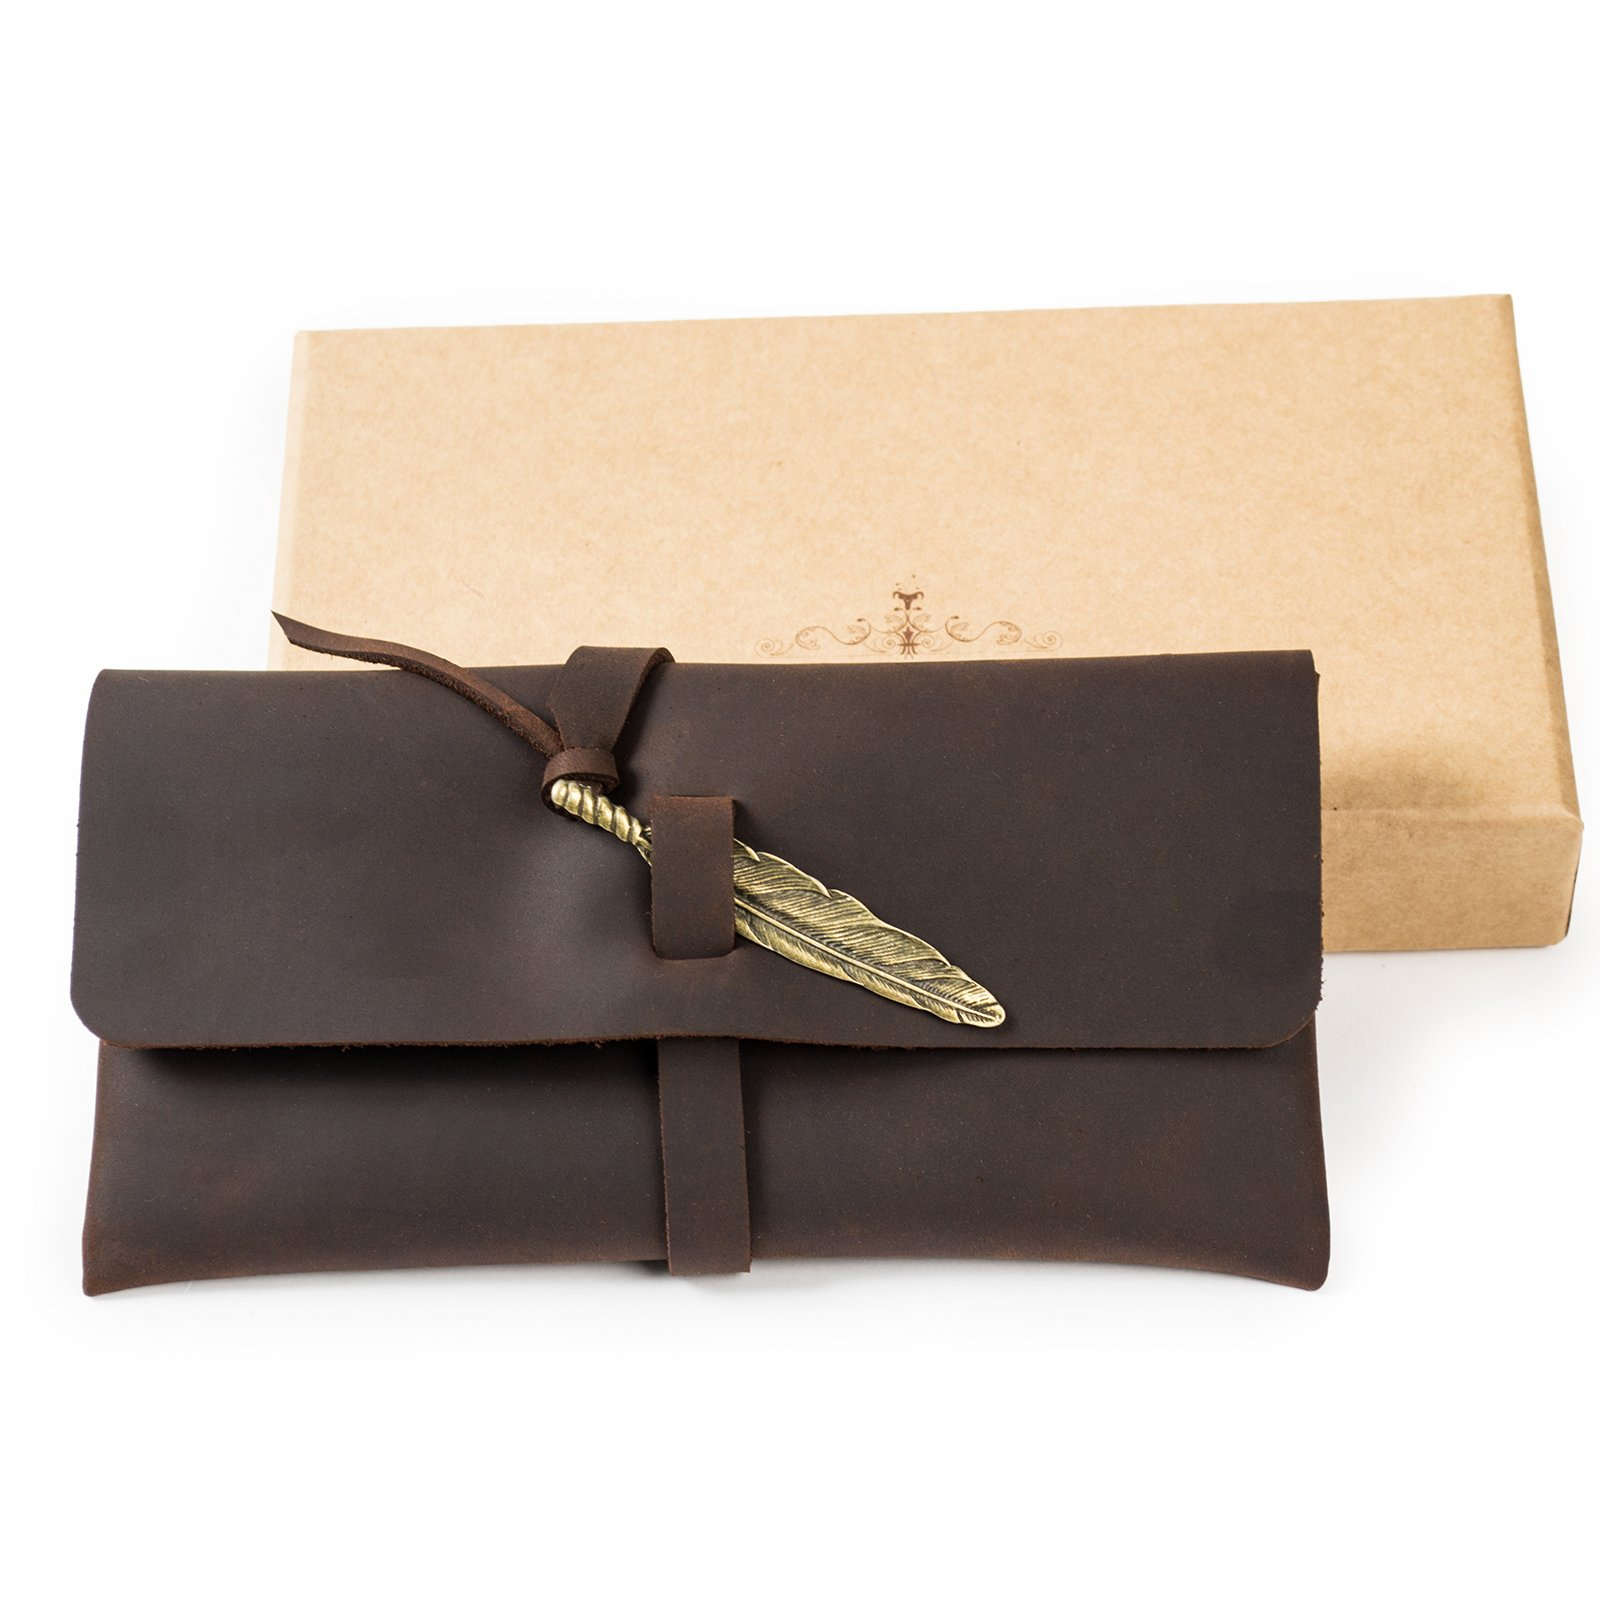 Ancicraft Leather Pouch Pen Case Pencil Holder Phone Bag Pocket with Vintage Feather Closure in Gift Box (Dark brown with feather)